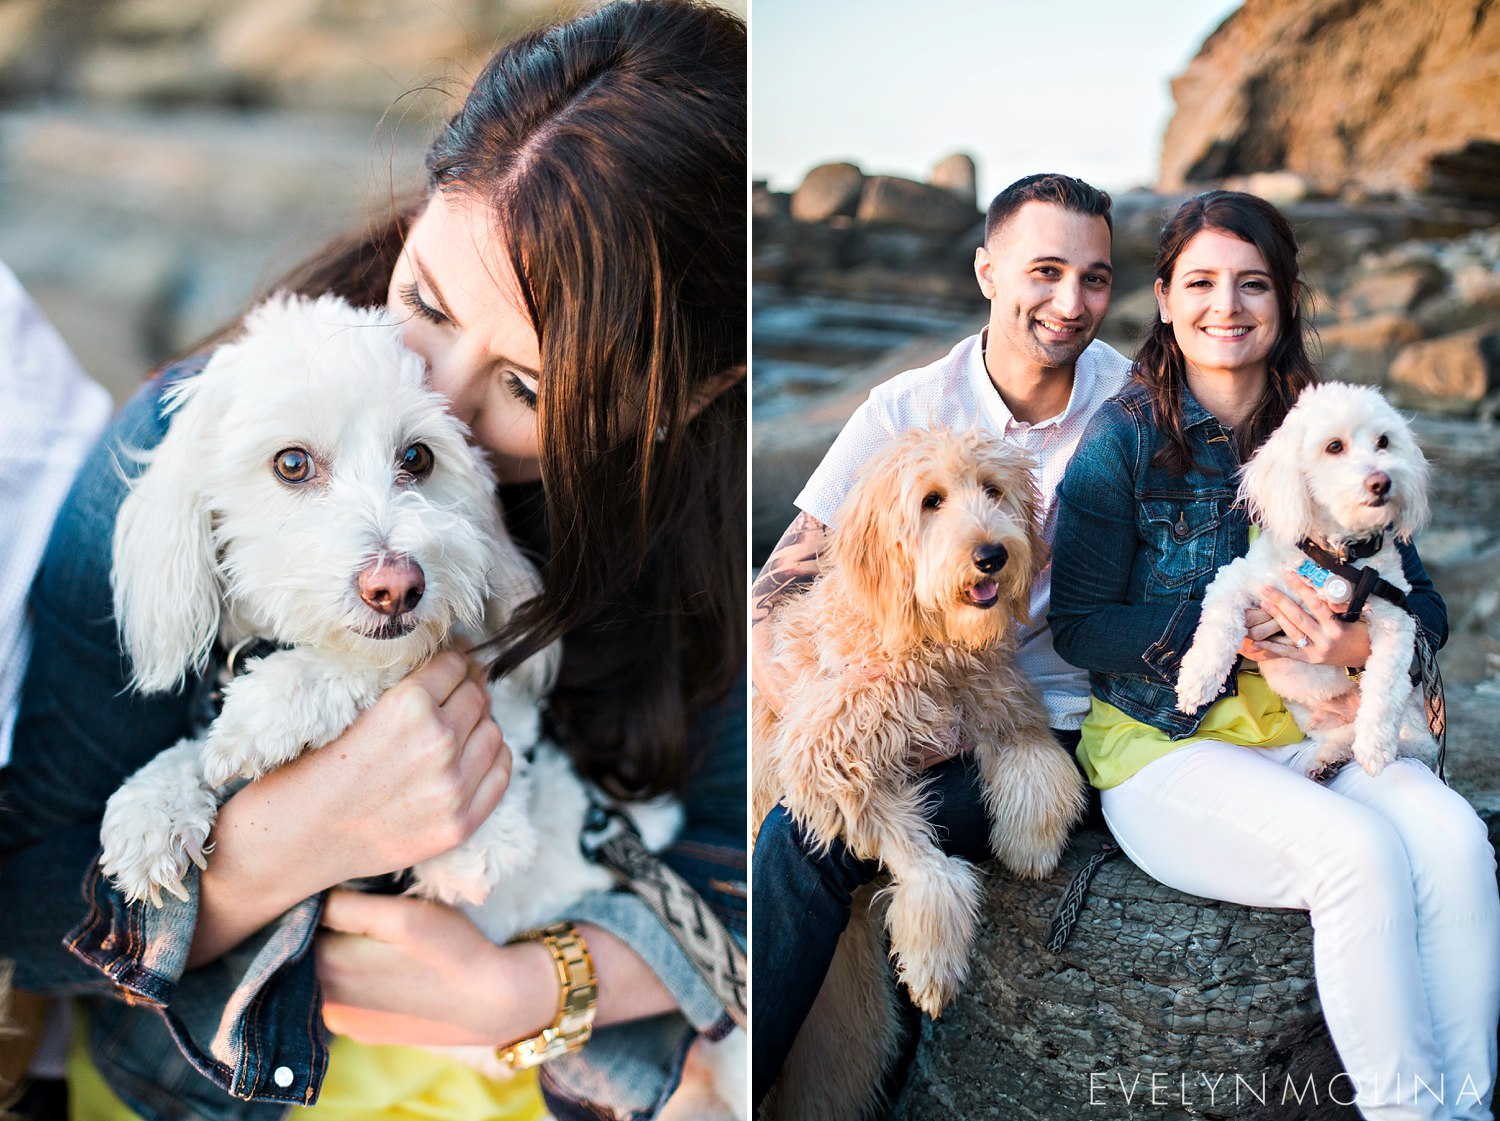 Sunset Cliffs Engagement Session - Carly and Alex - Evelyn Molina Photography_0022.jpg